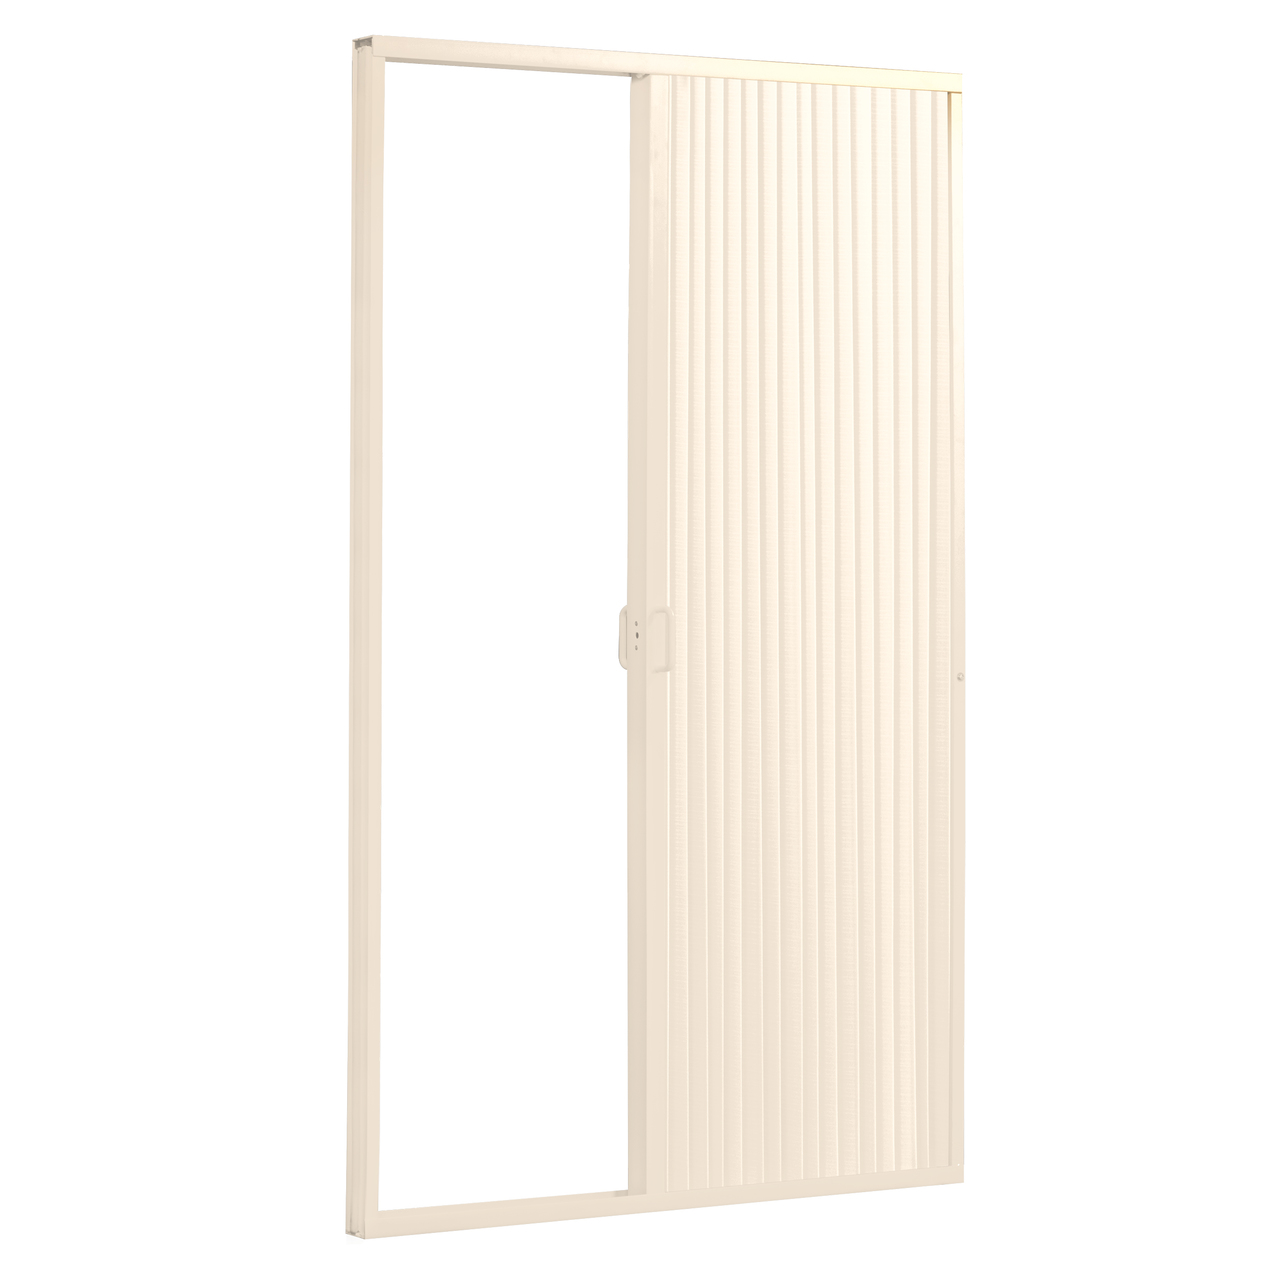 Showers Pleated Folding Rv Shower Doors Ivory